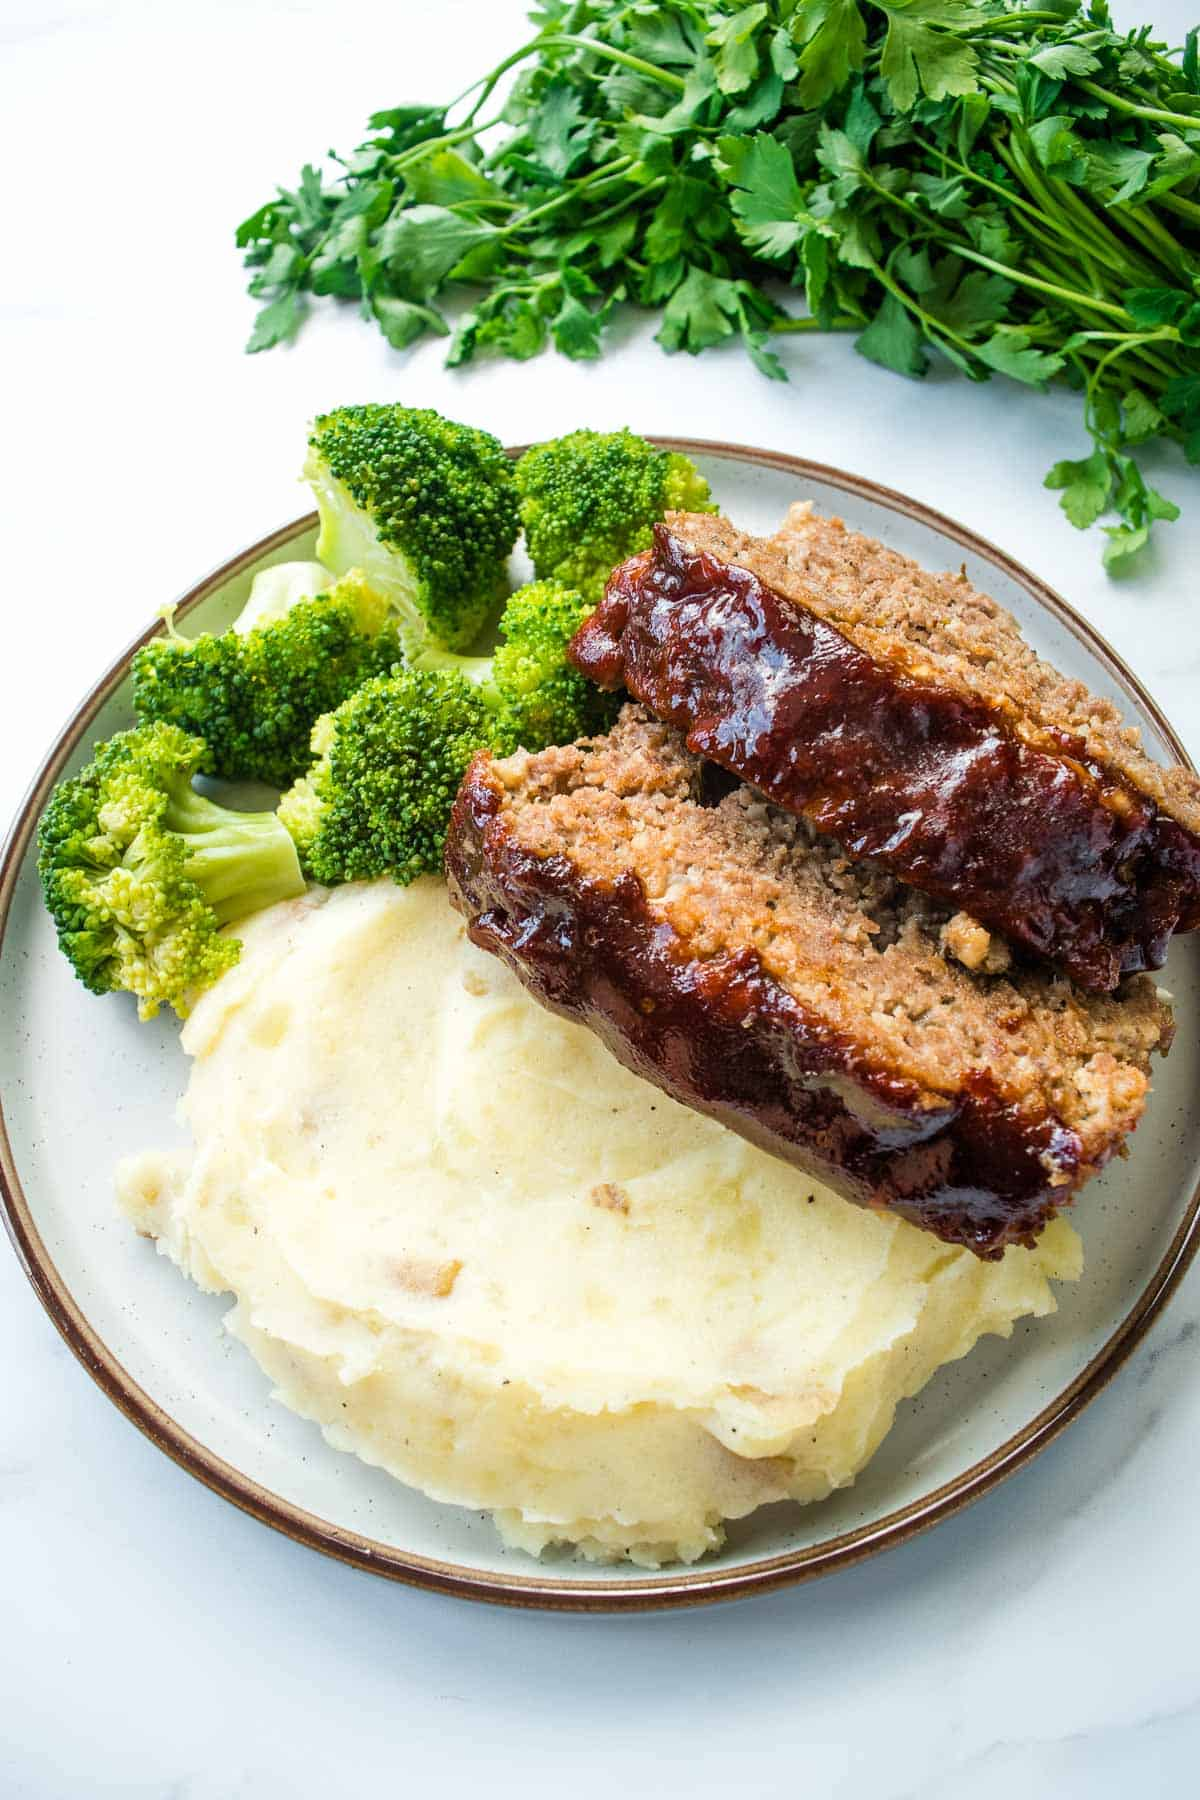 Meatloaf with broccoli and mashed potatoes.